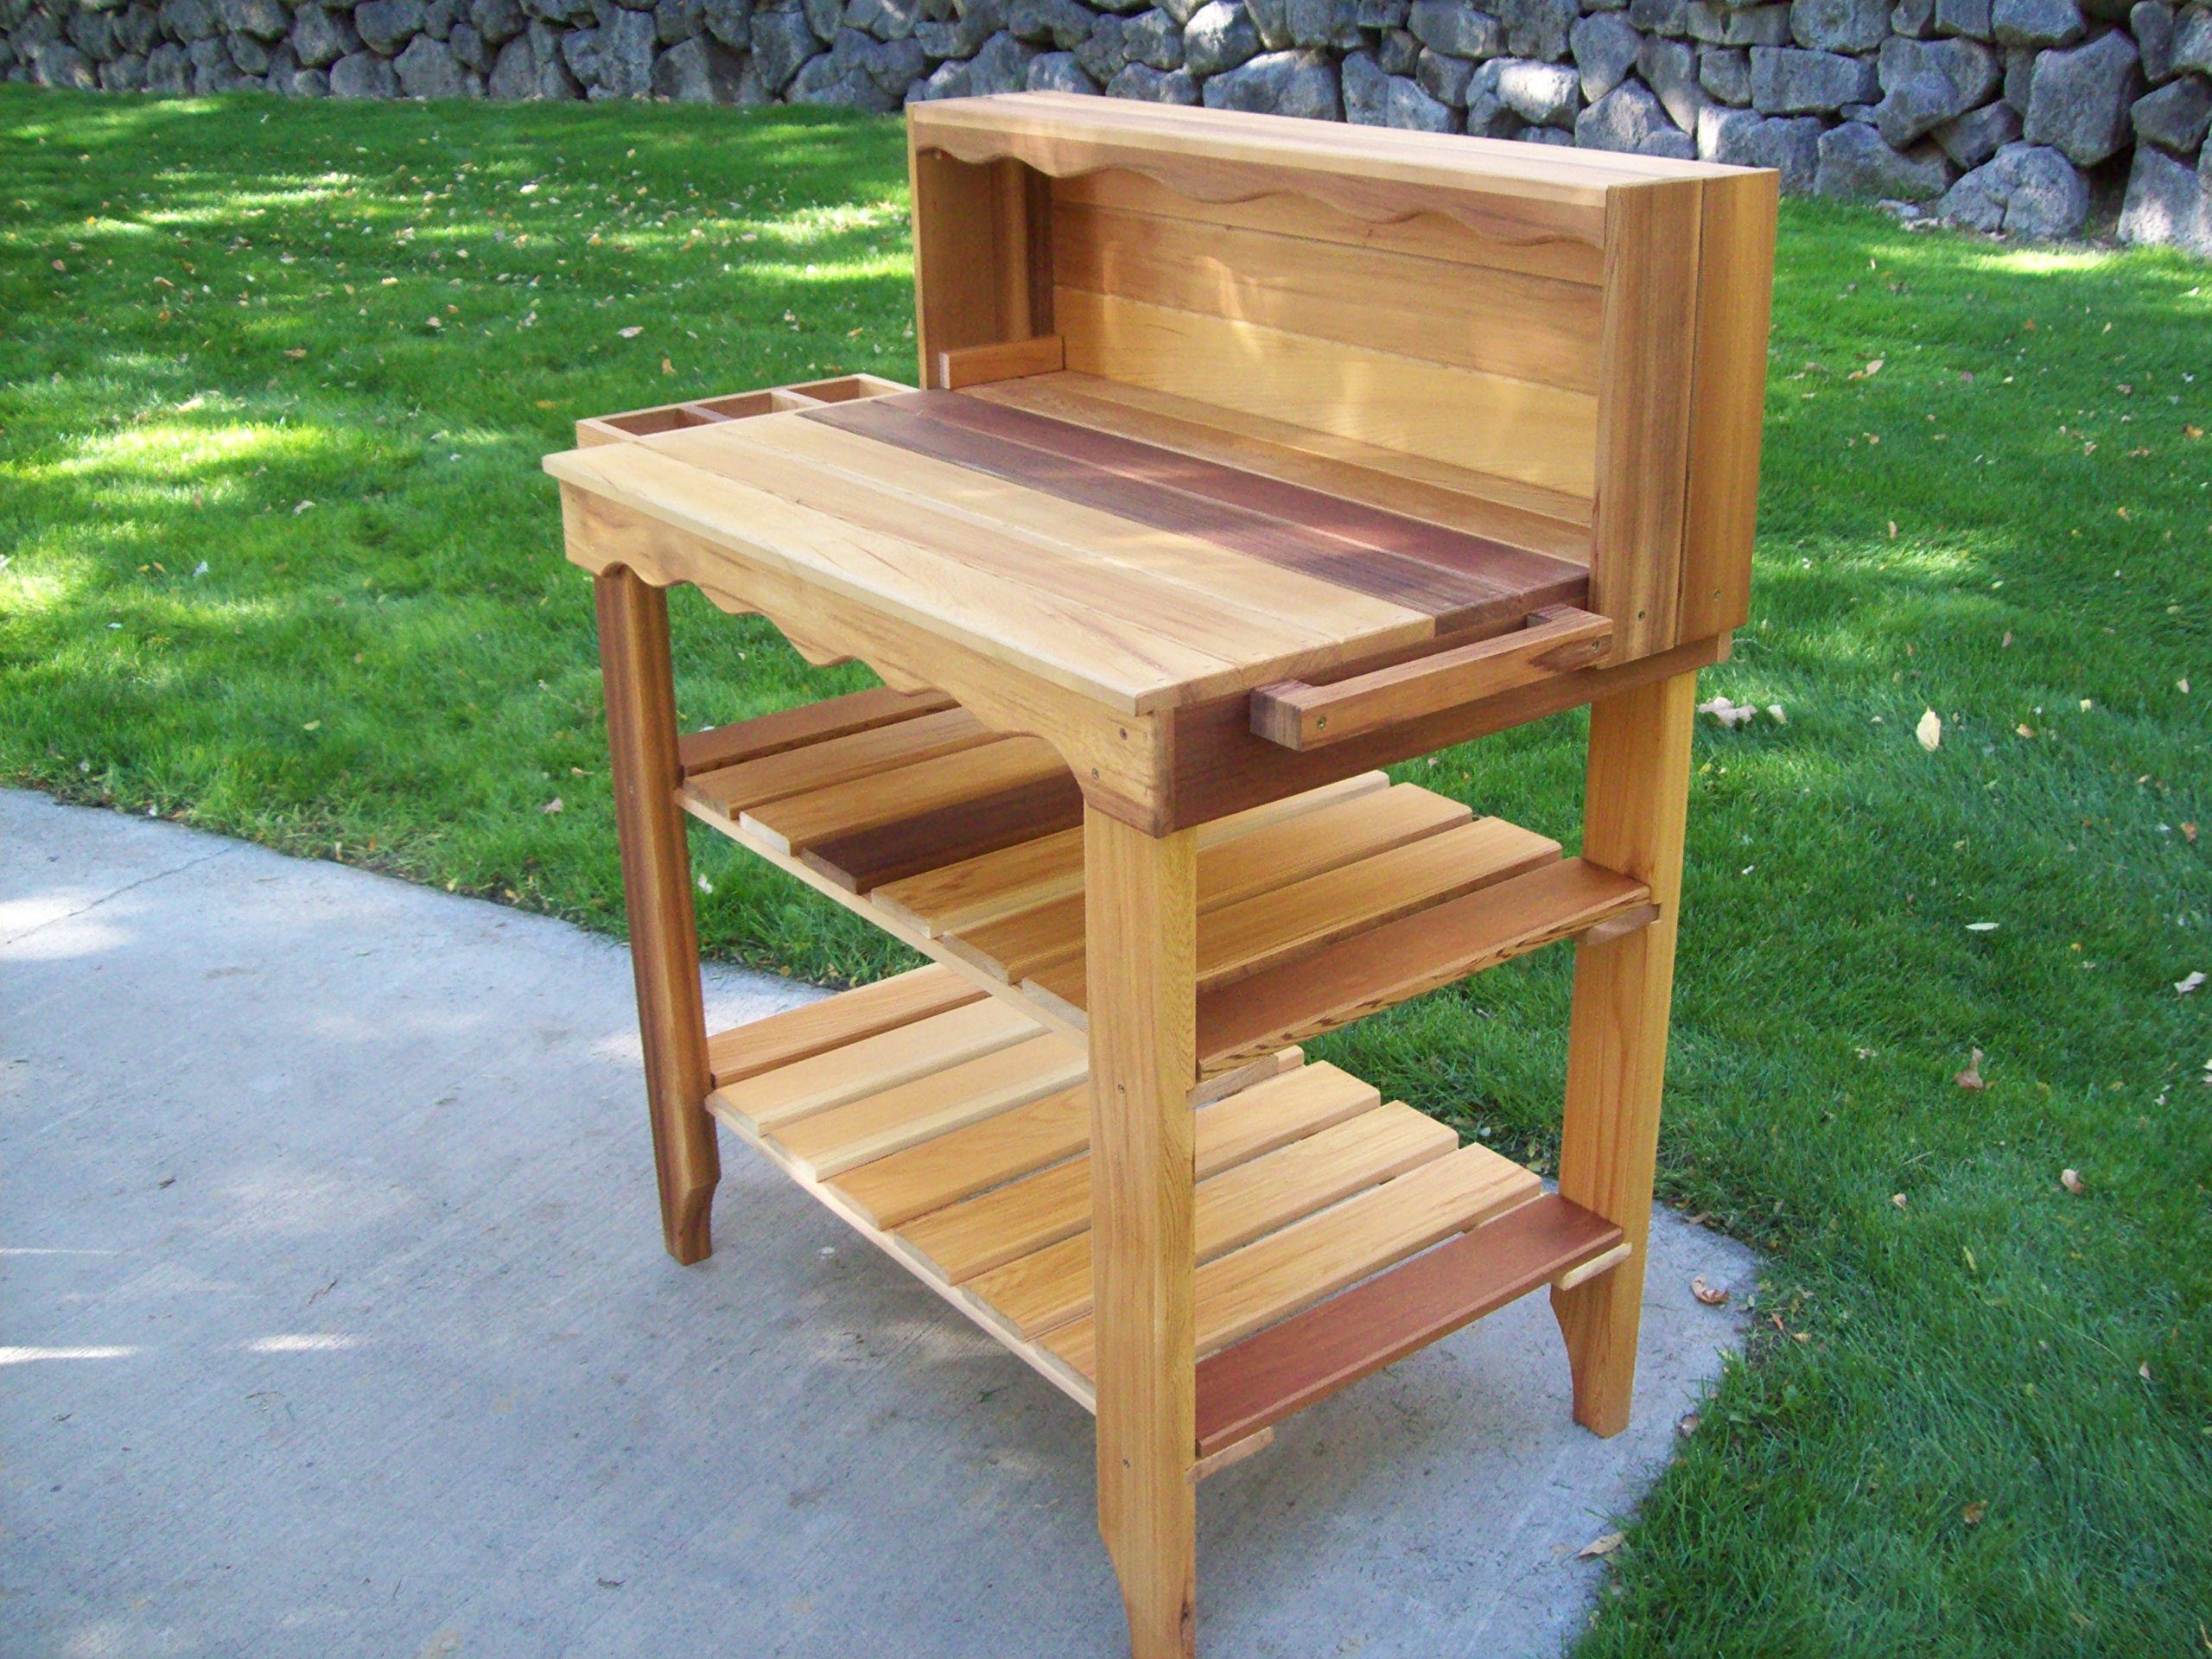 Wood Country Deluxe Potting Bench, Cedar Stain by Wood Country